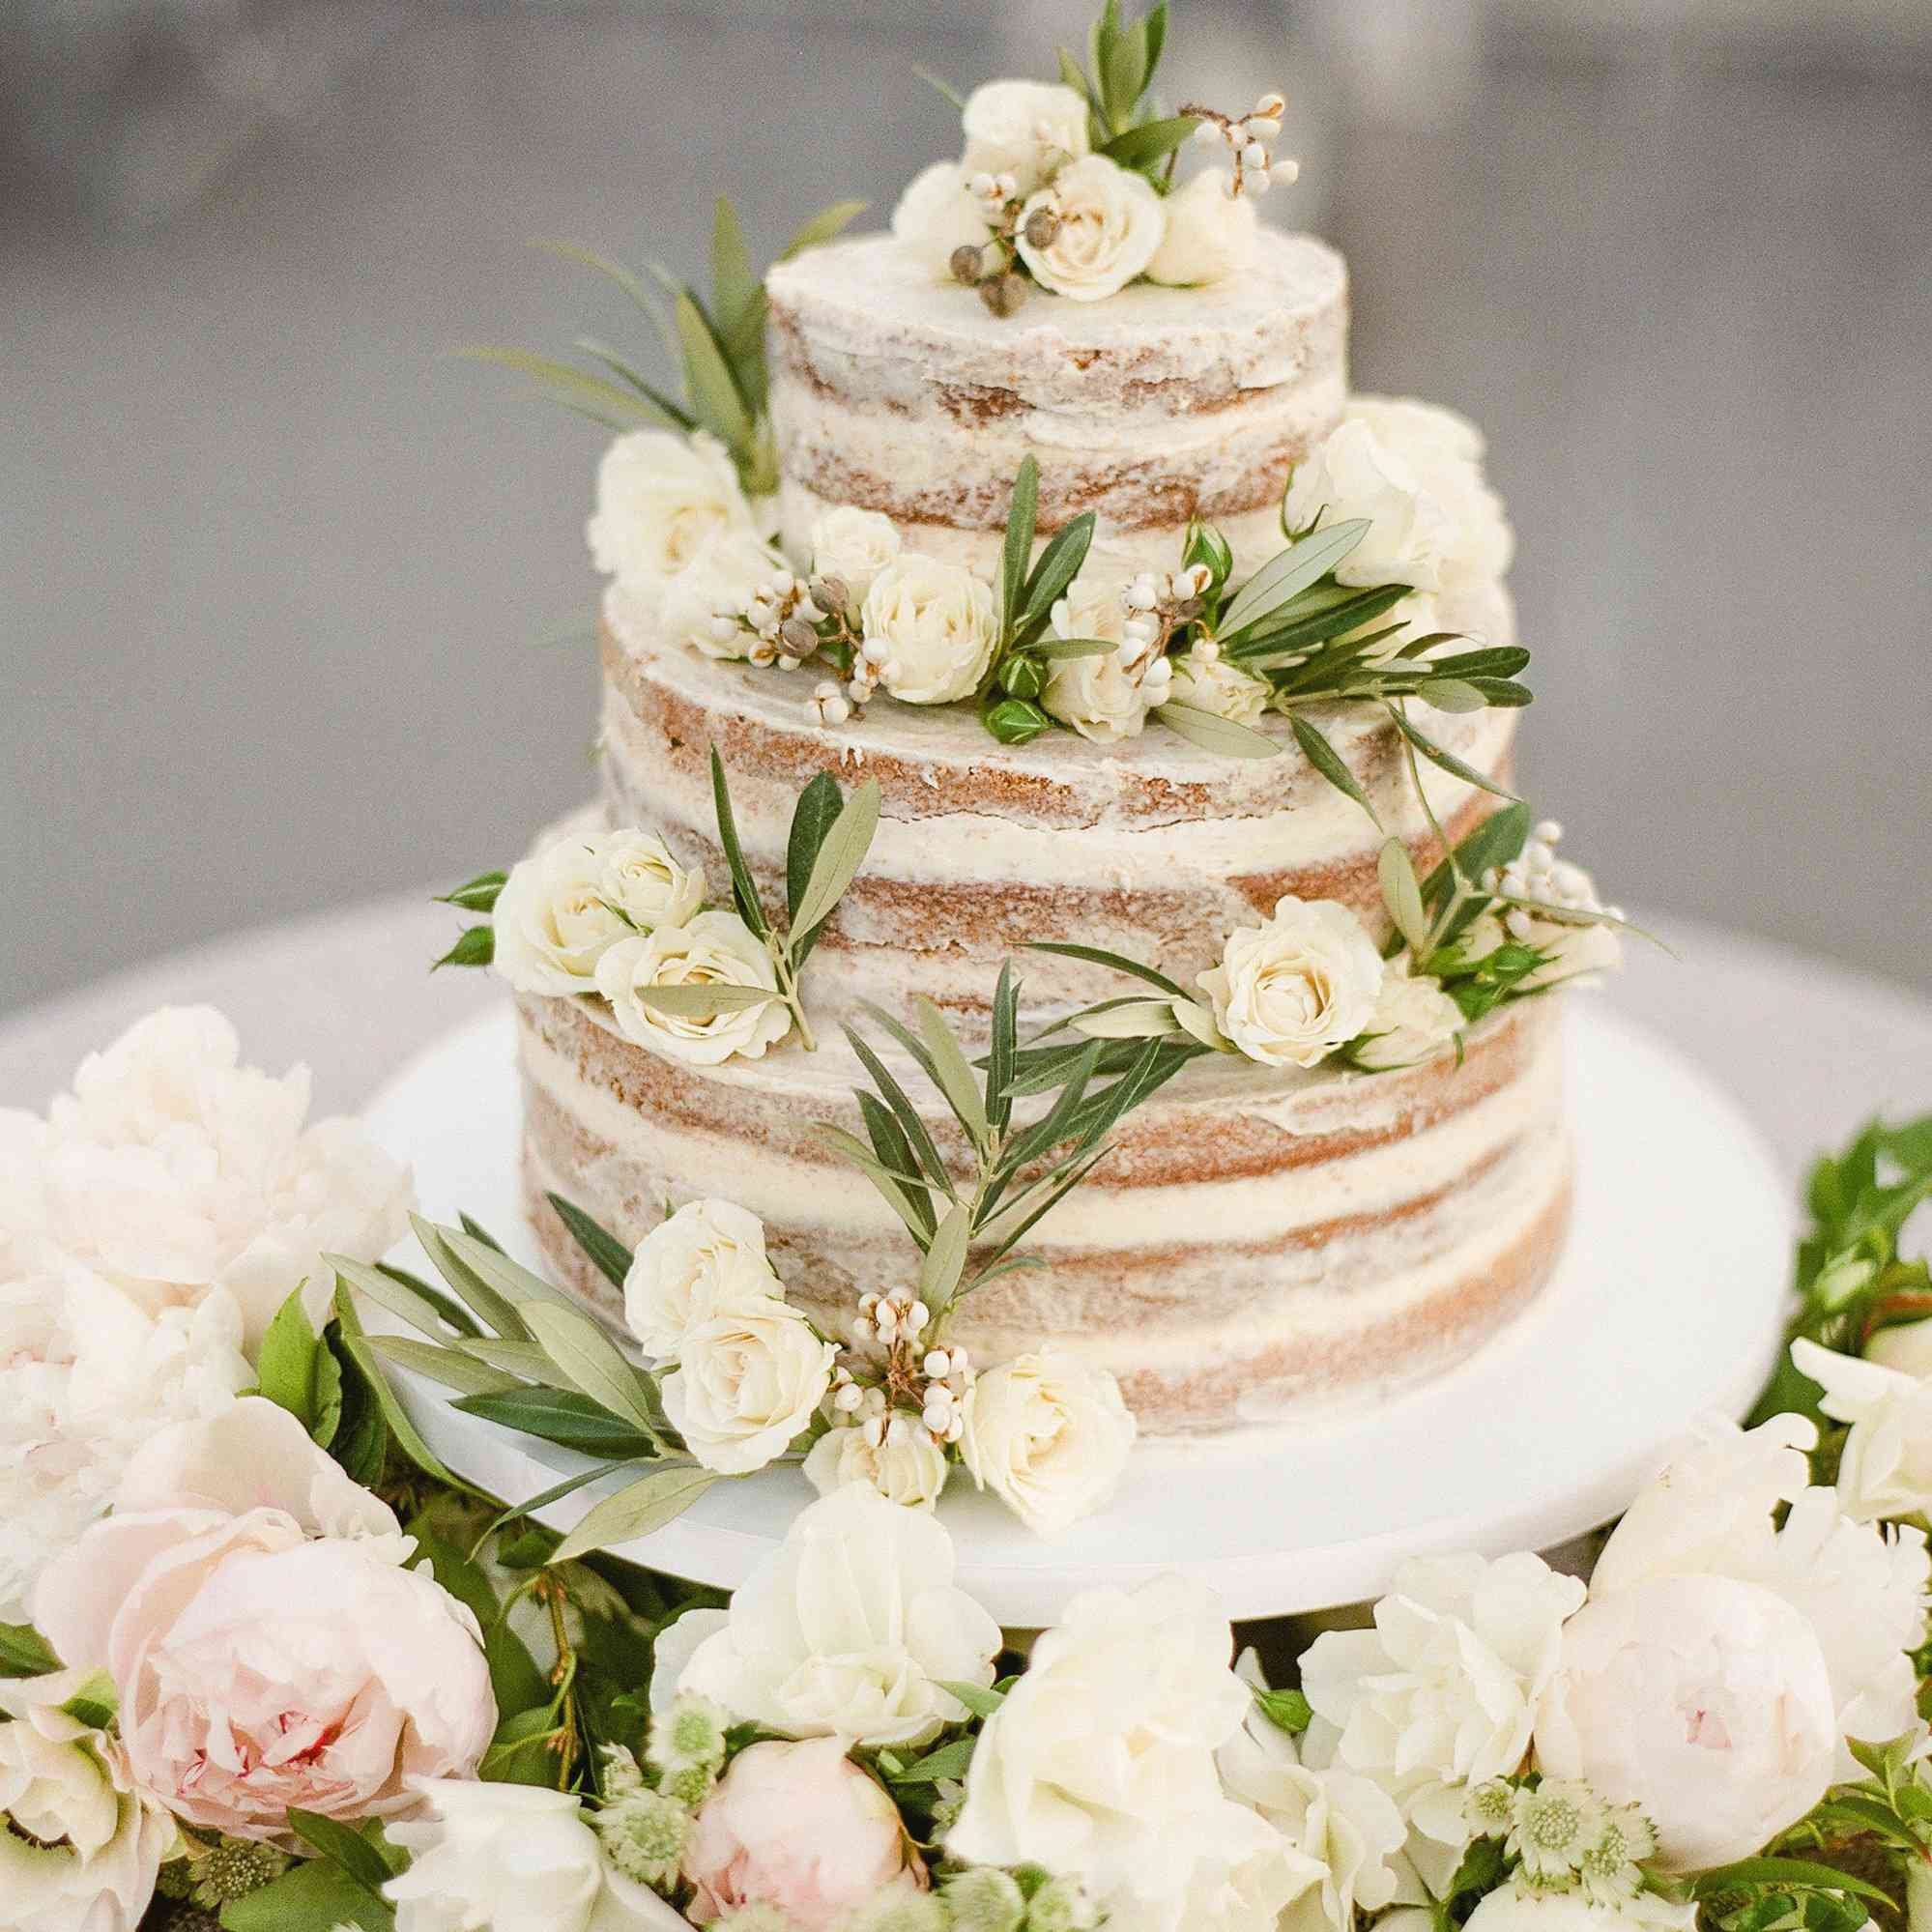 three-tier naked wedding cake with fresh flowers